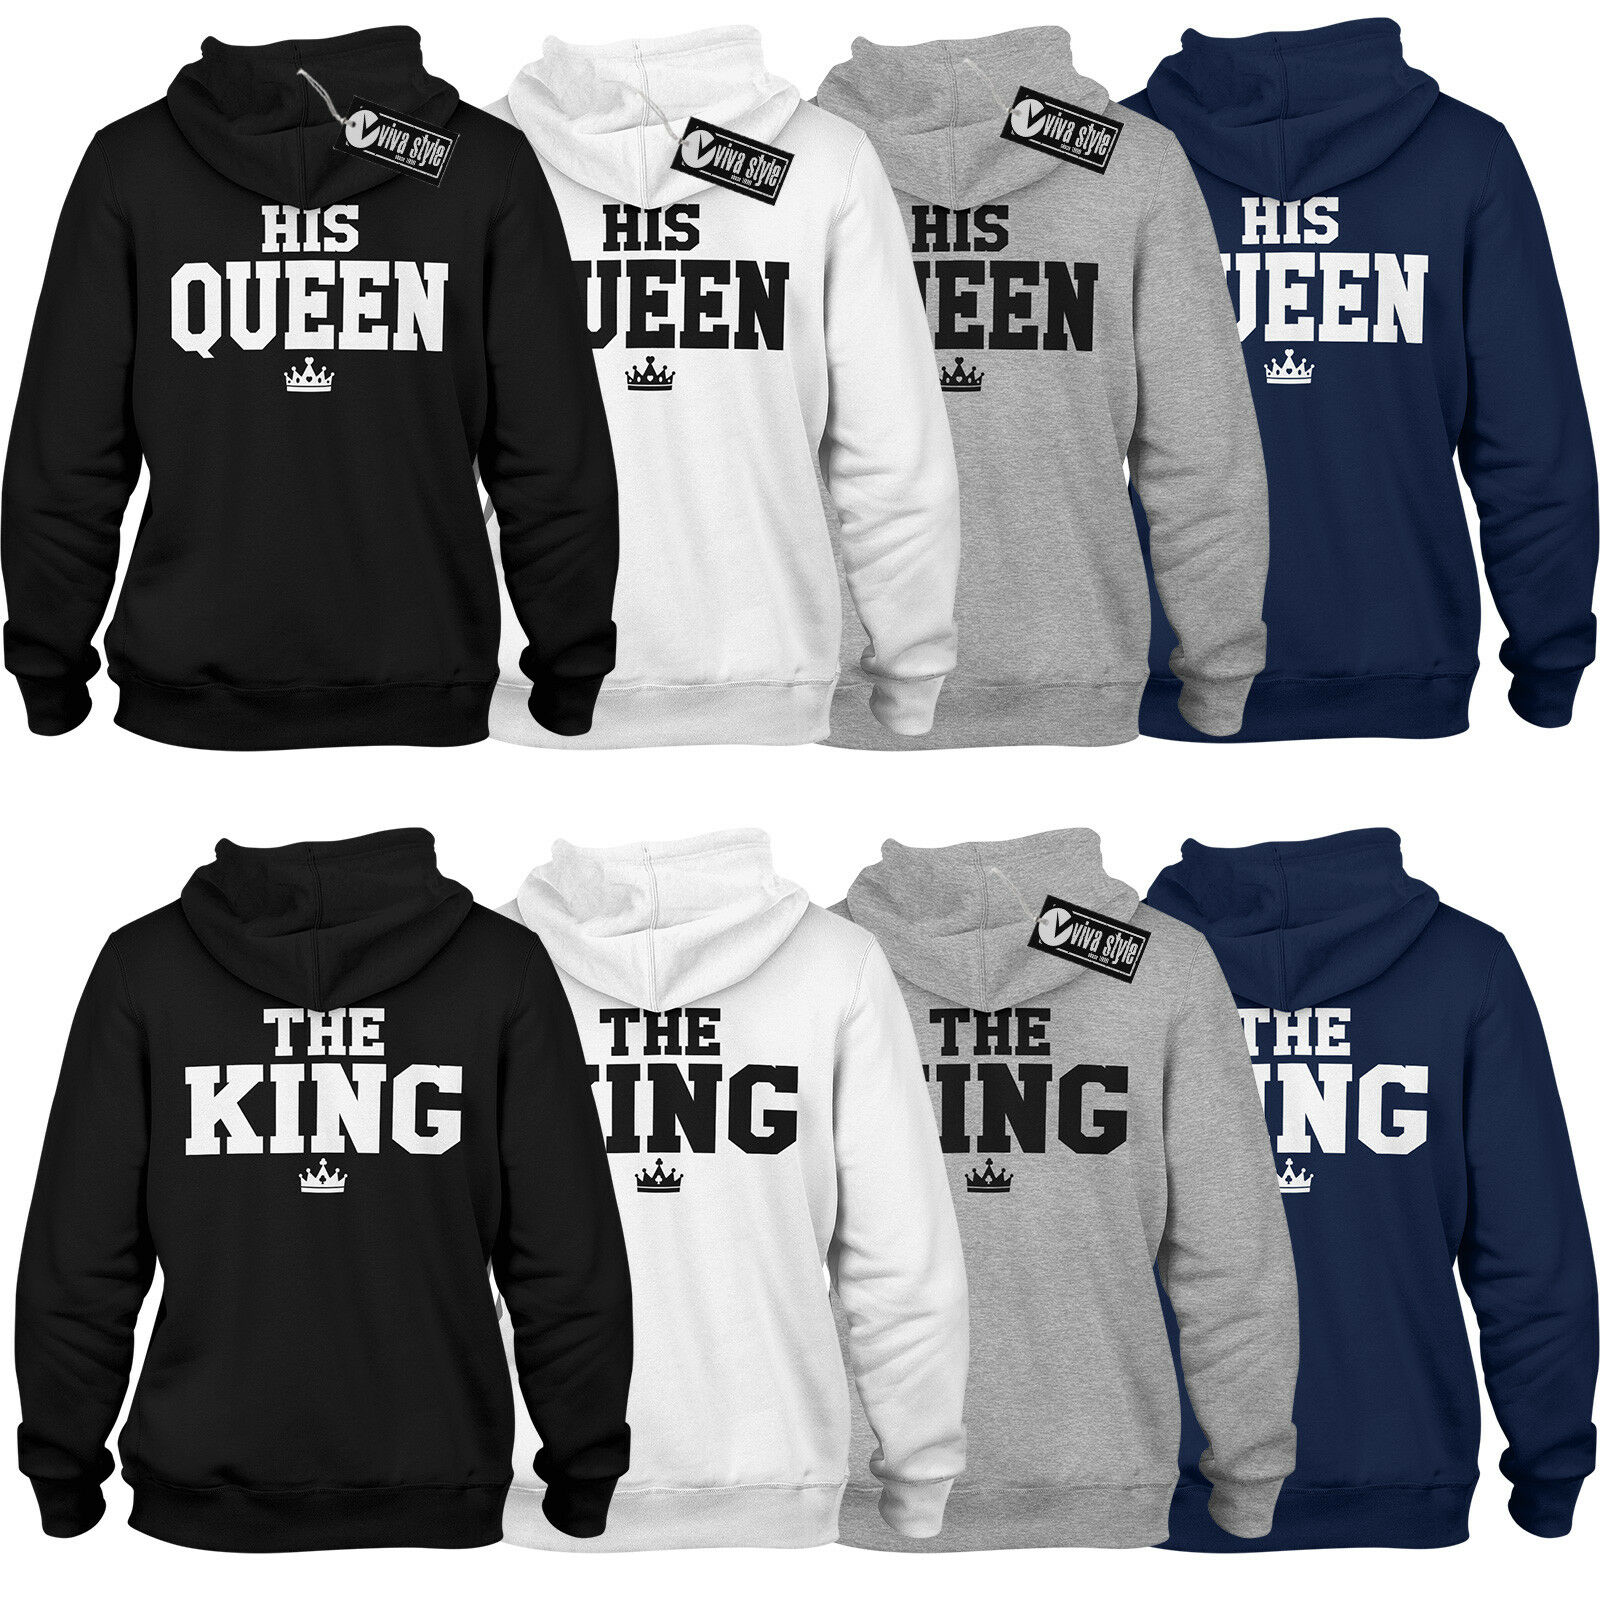 The King His Queen Classic Pulli Hoodie Geschenk für Paare im SET Love Partner